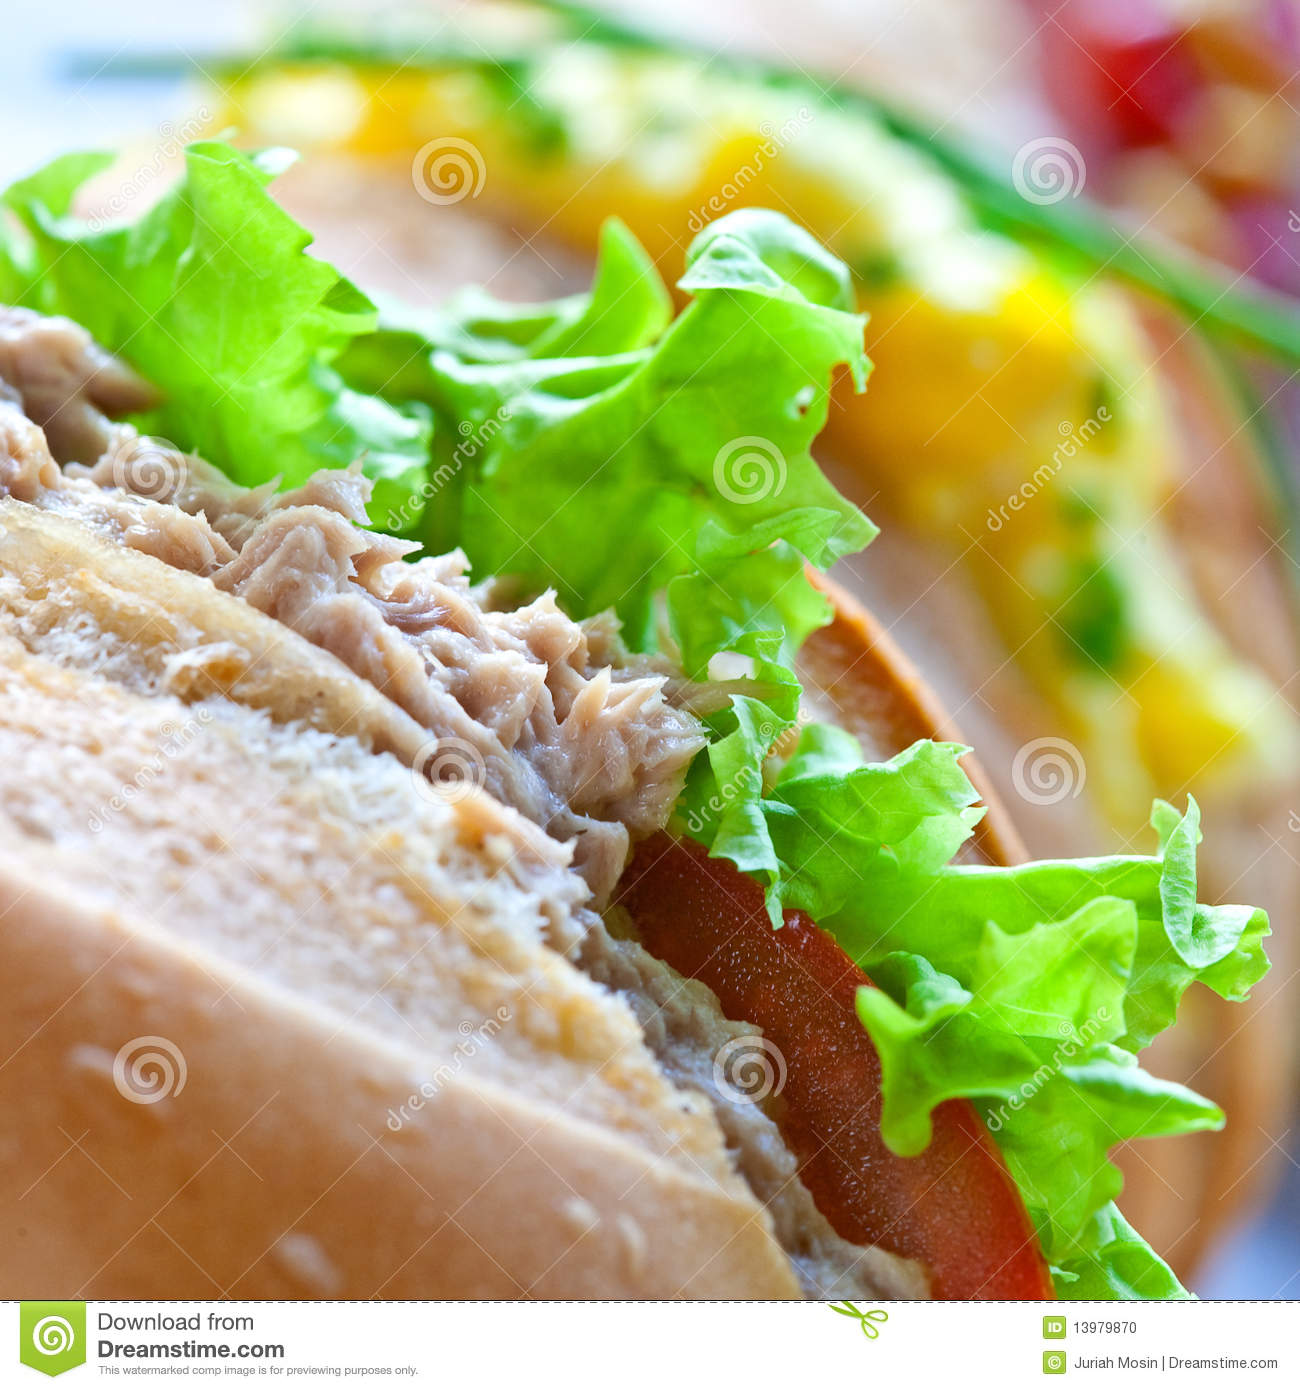 Sandwich rolls with egg tuna and salad stock photo for Tuna and egg sandwich